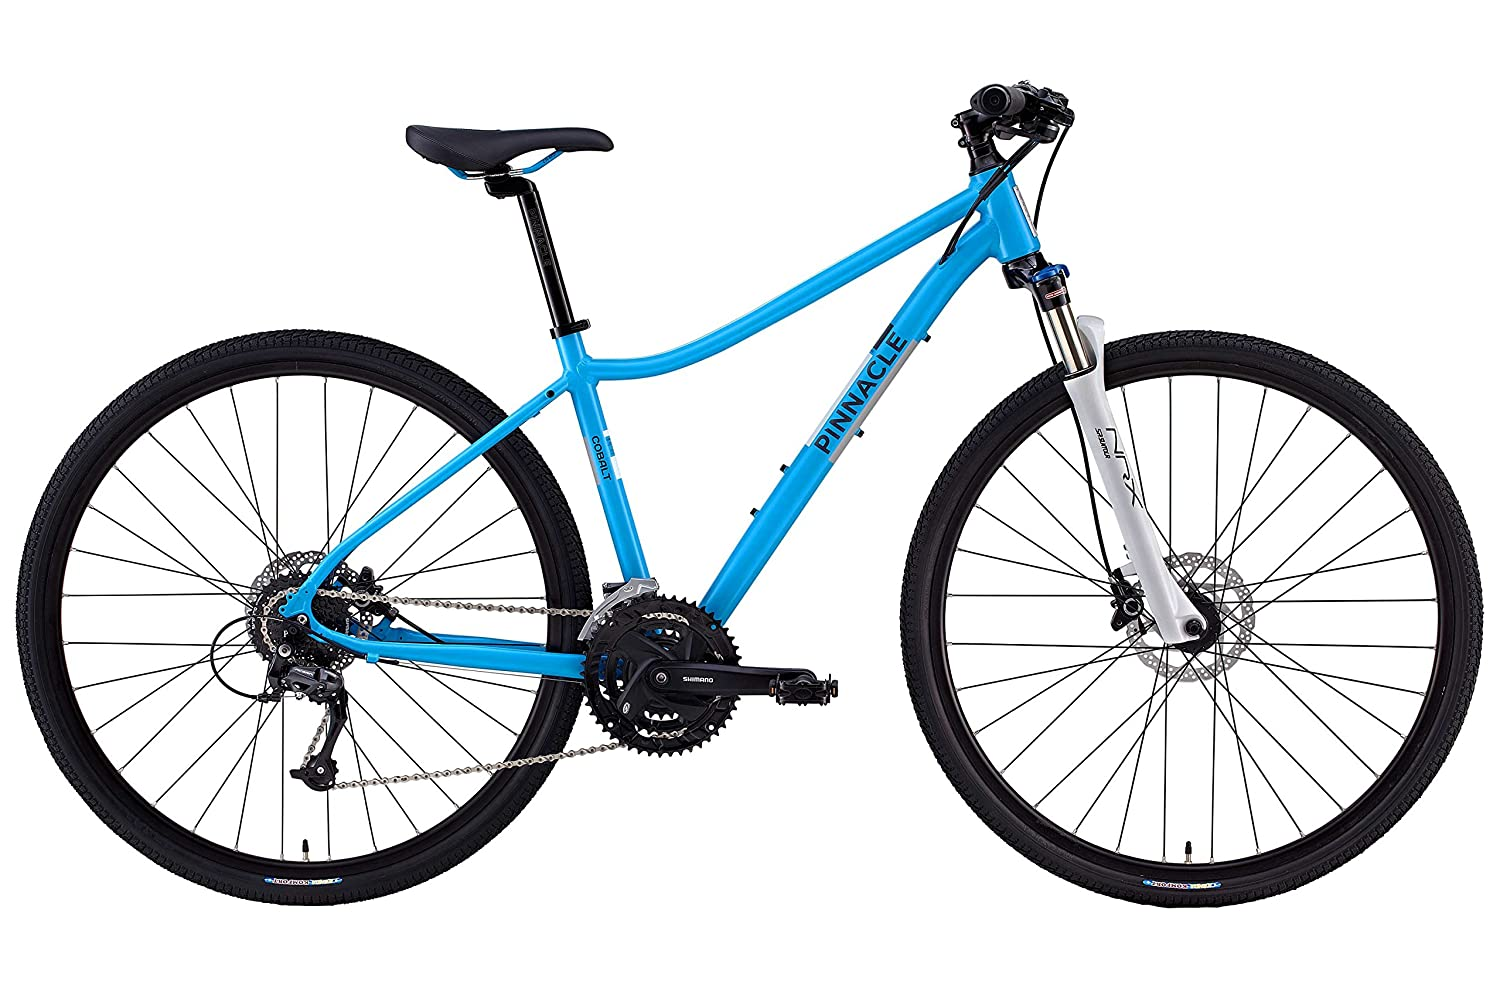 5943540ac80 Pinnacle Cobalt 3 Womens 2016 Hybrid Bike From Evans Cycles  Amazon.co.uk   Sports   Outdoors